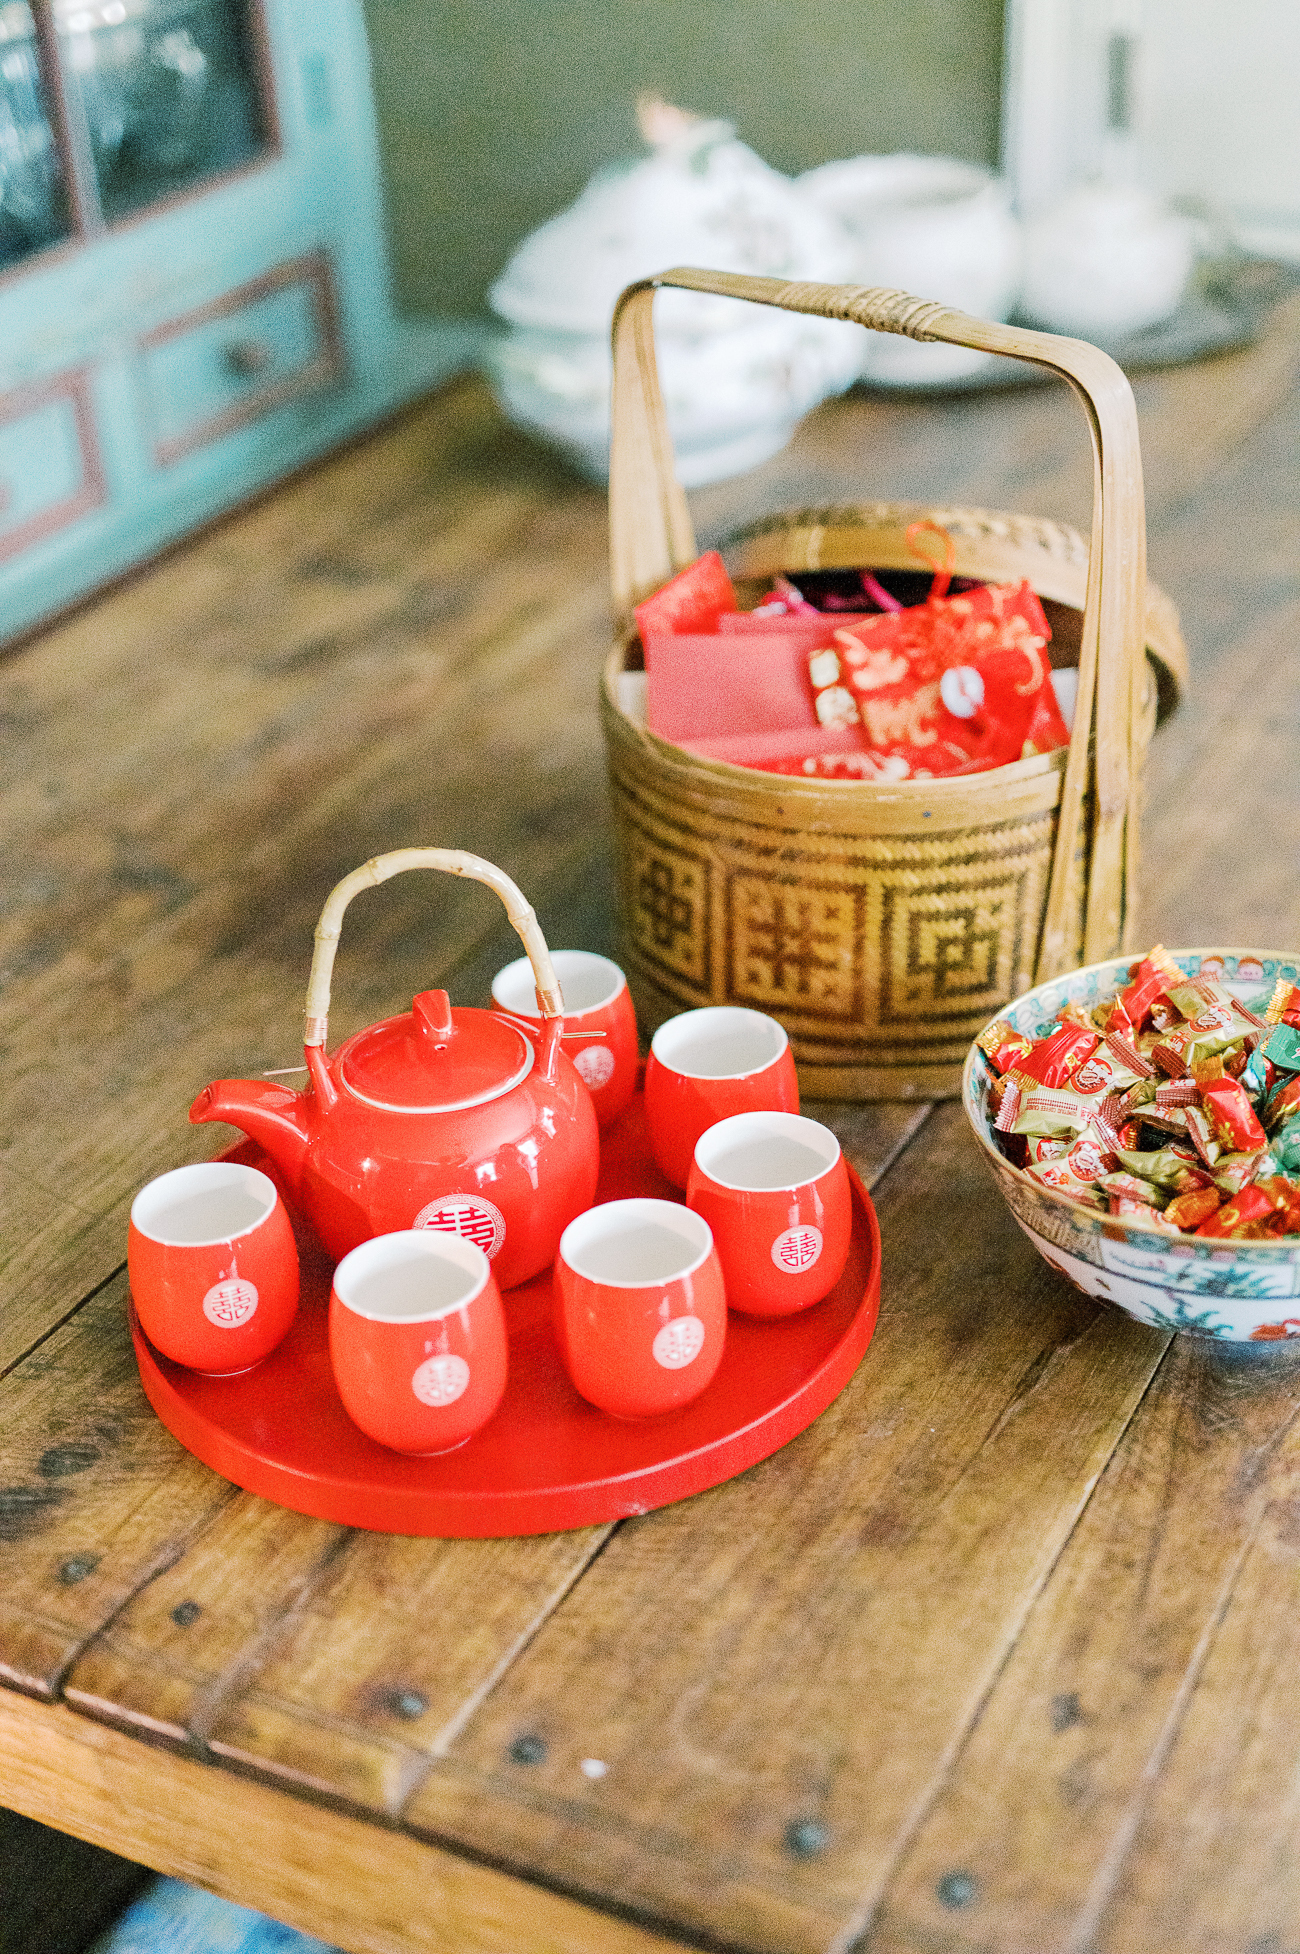 Double Happiness Chinese wedding tea set and candies